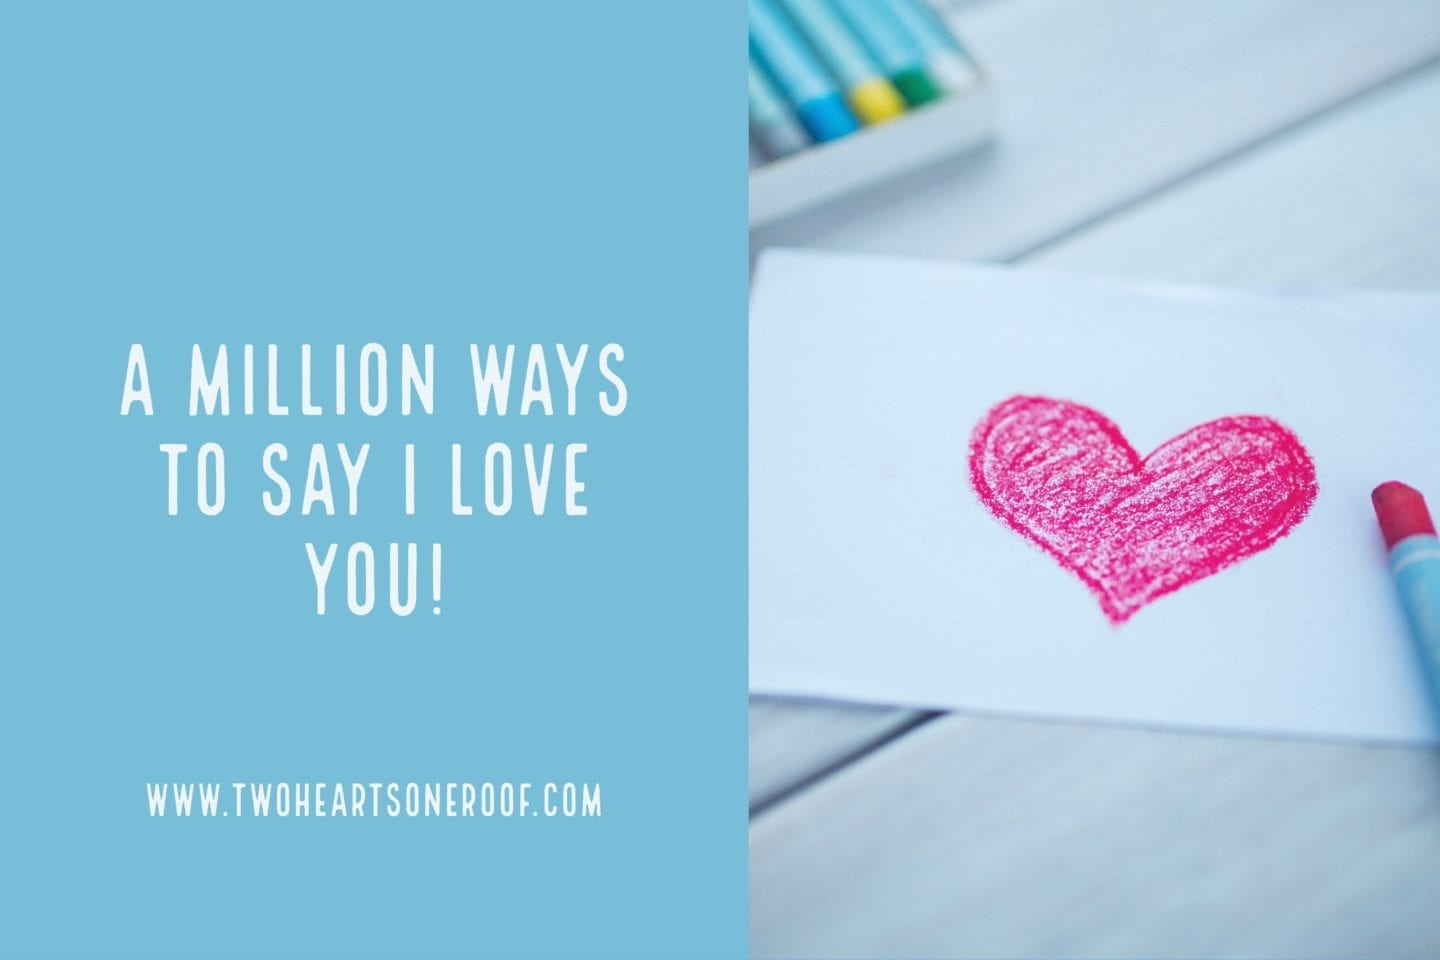 A Million Ways to Say I Love You!